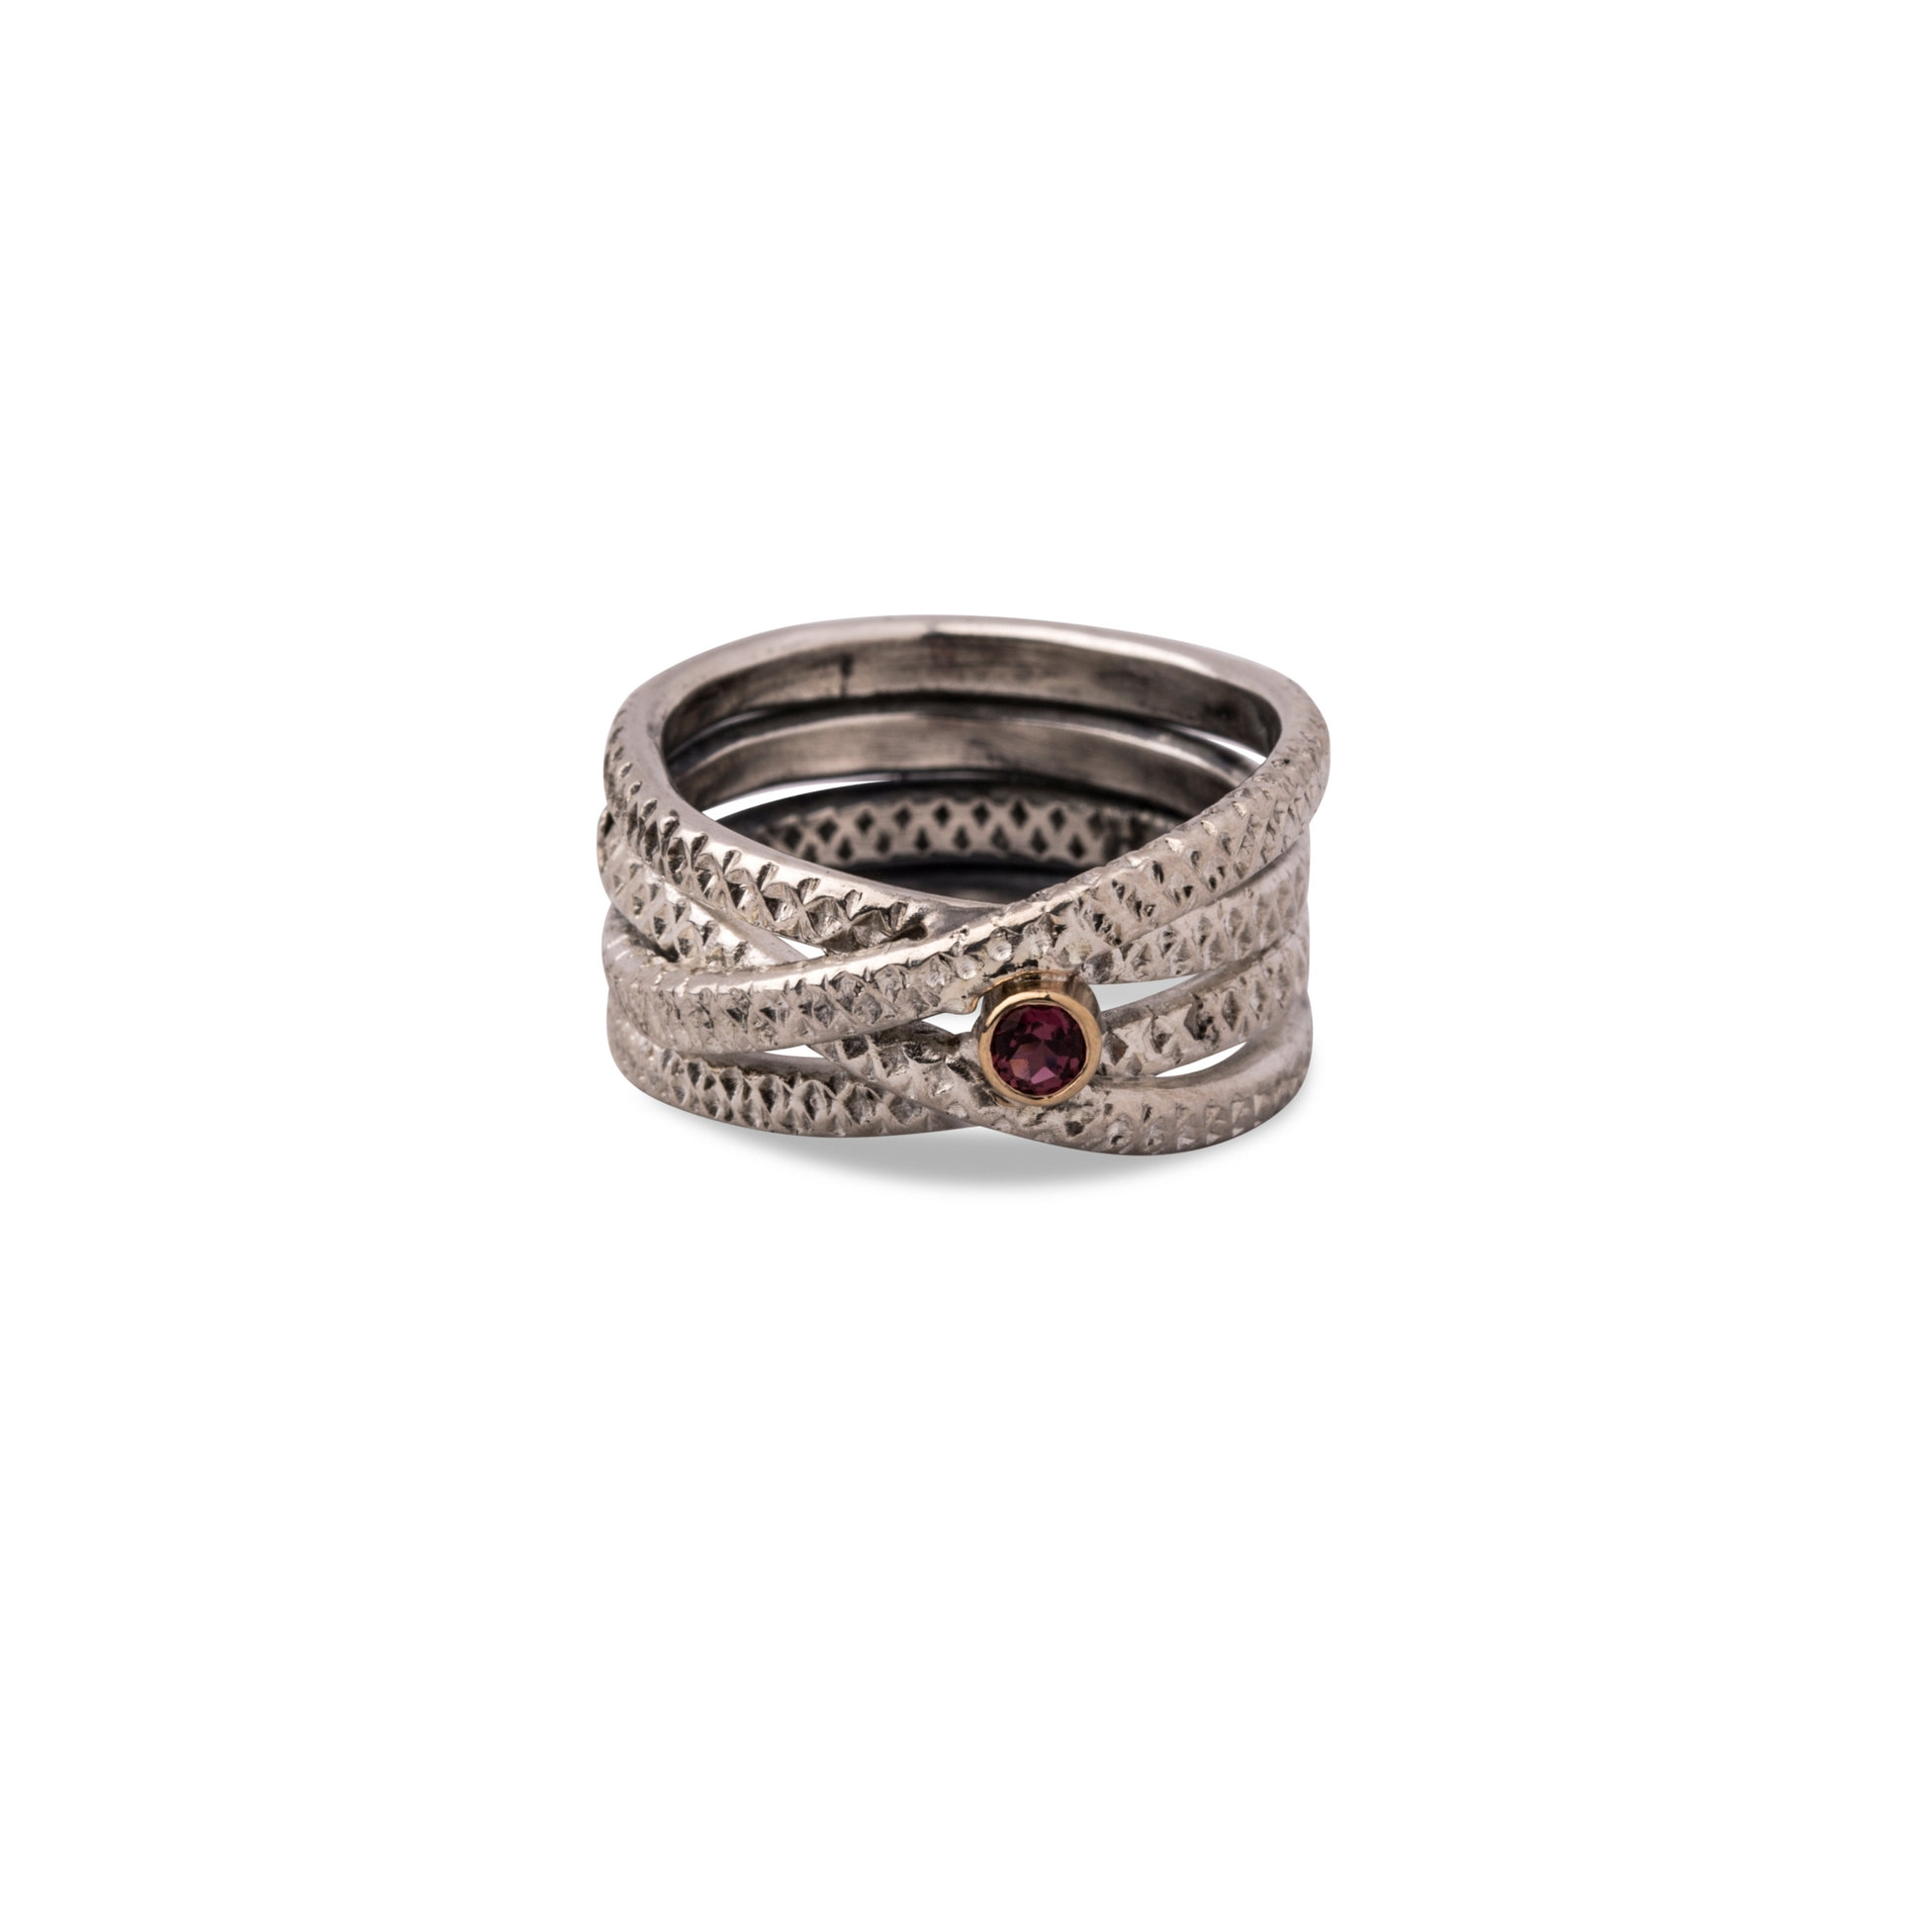 ring_lace_cup_16226.JPG